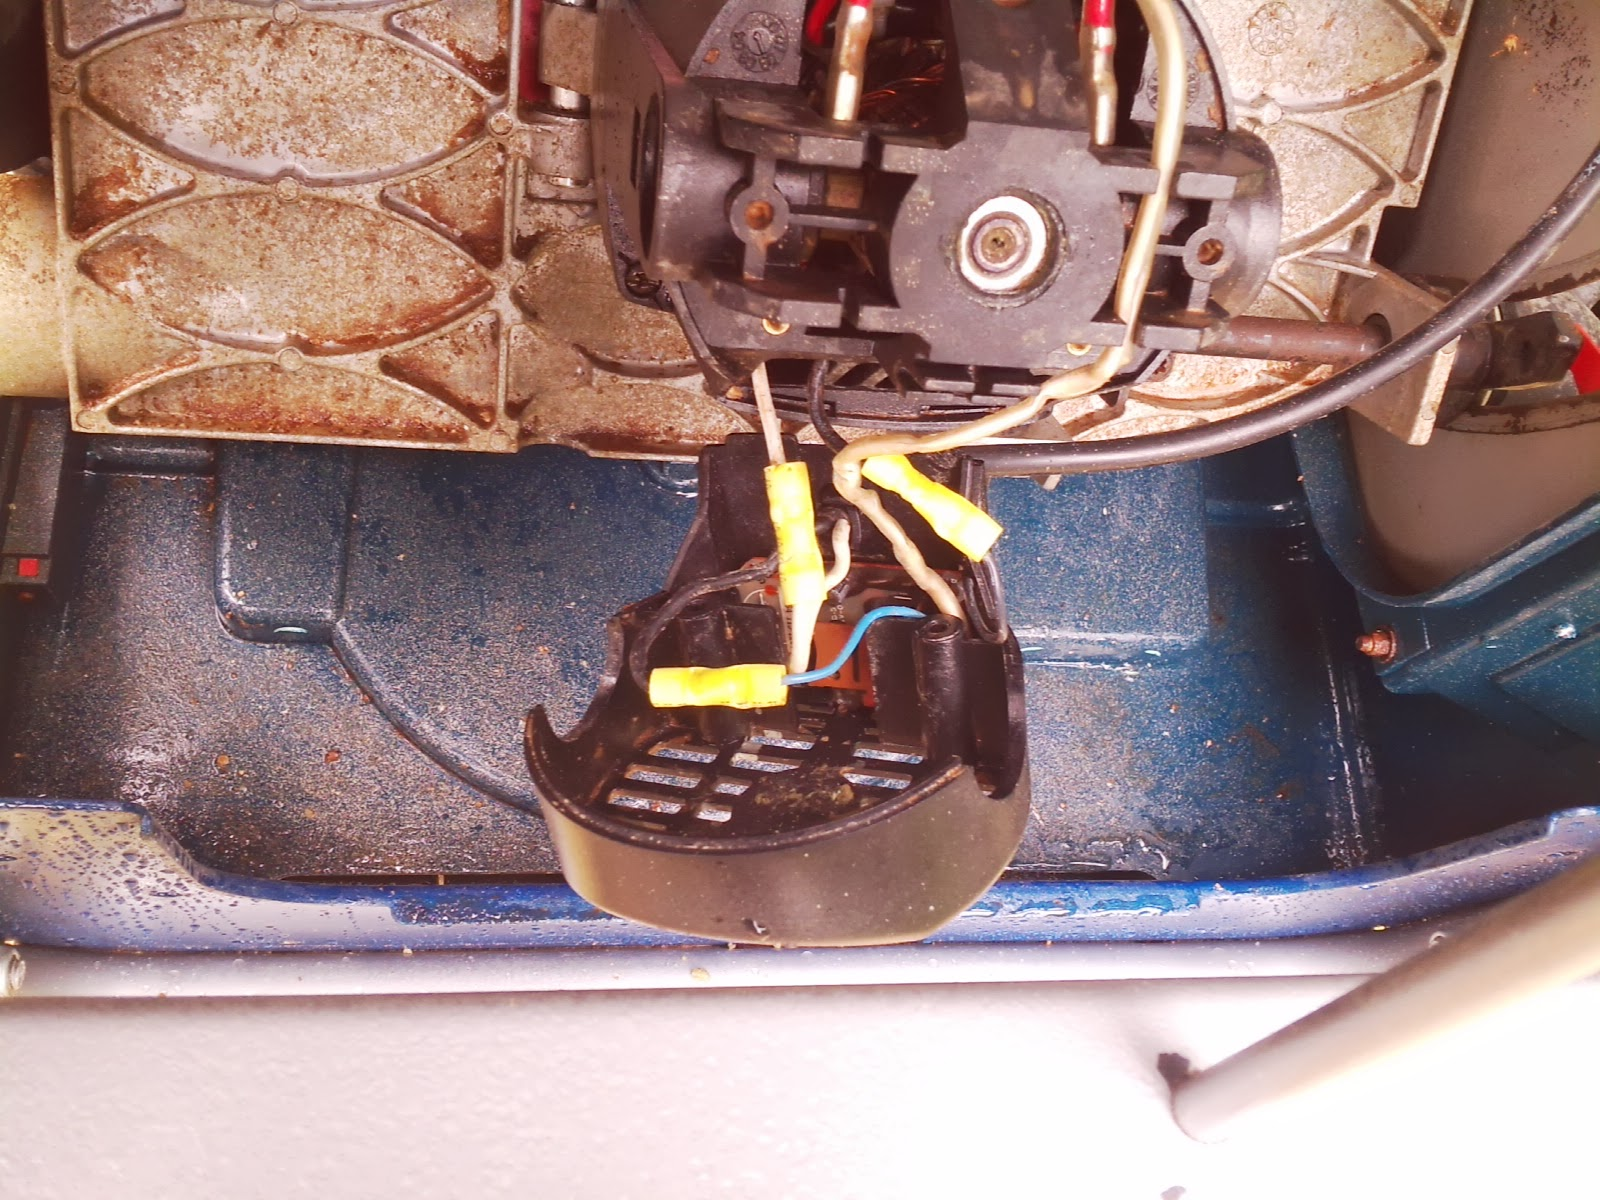 hight resolution of here is a really bad wiring photo i m having computer issues at the moment